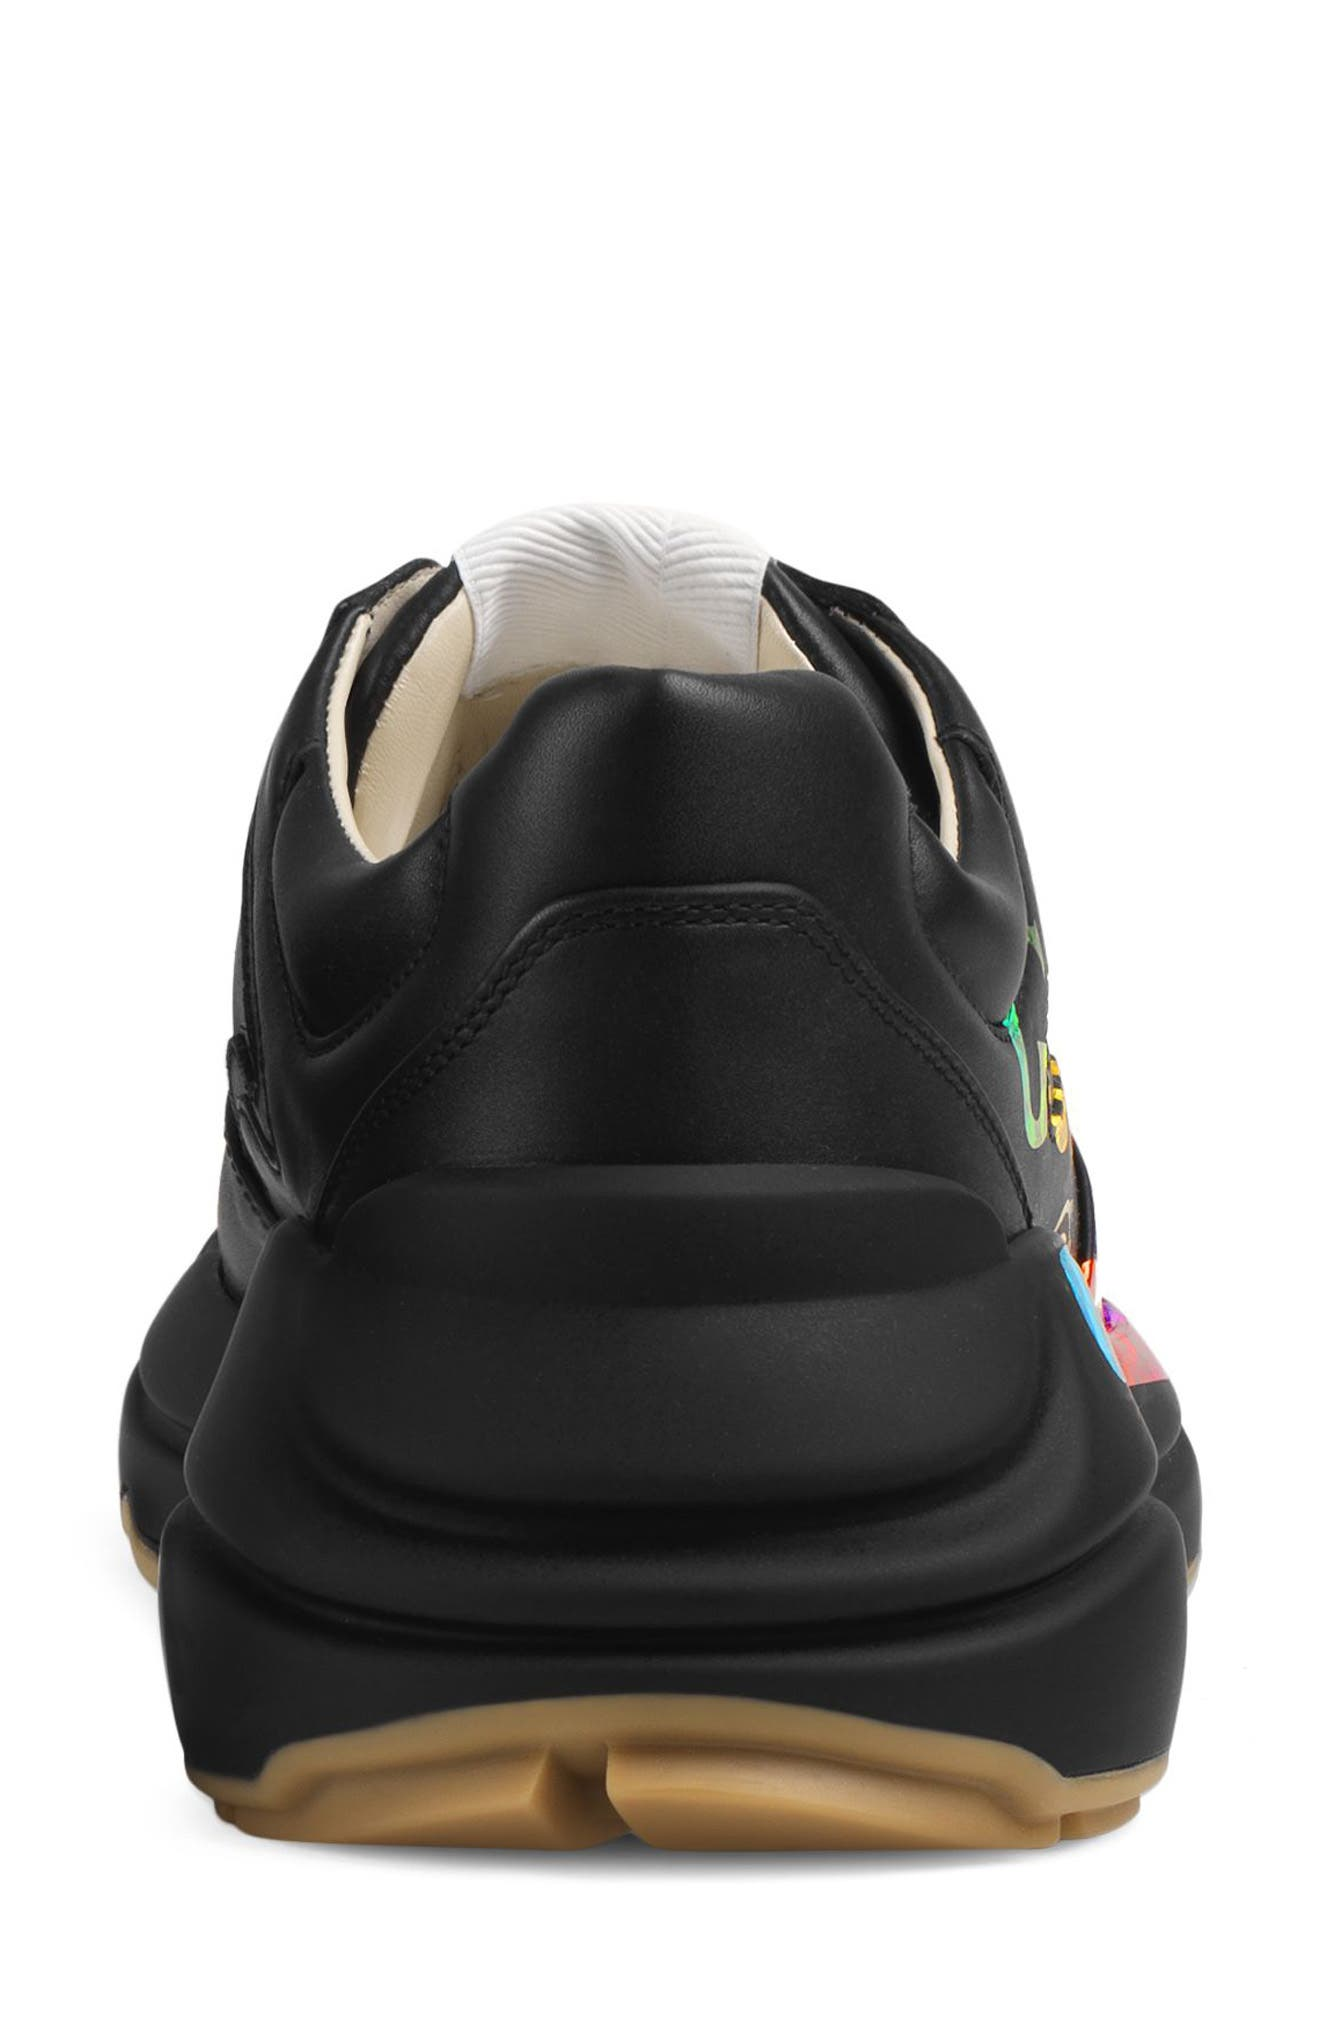 Rhyton Rainbow Sneaker,                             Alternate thumbnail 5, color,                             BLACK/ RAINBOW